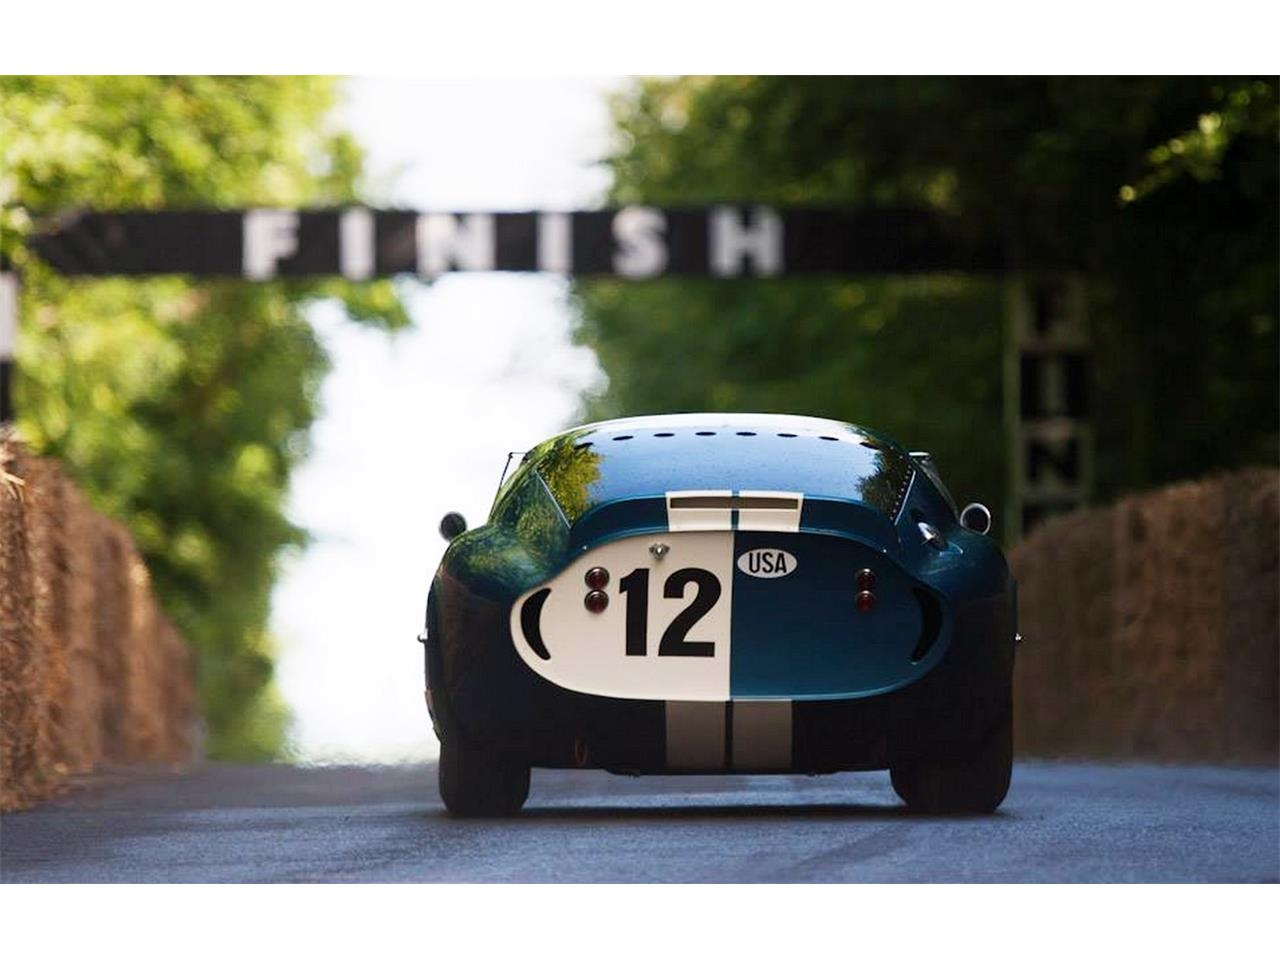 Large Picture of Classic '62 Custom Built Daytona Coupe located in California - $375,000.00 - LBP2